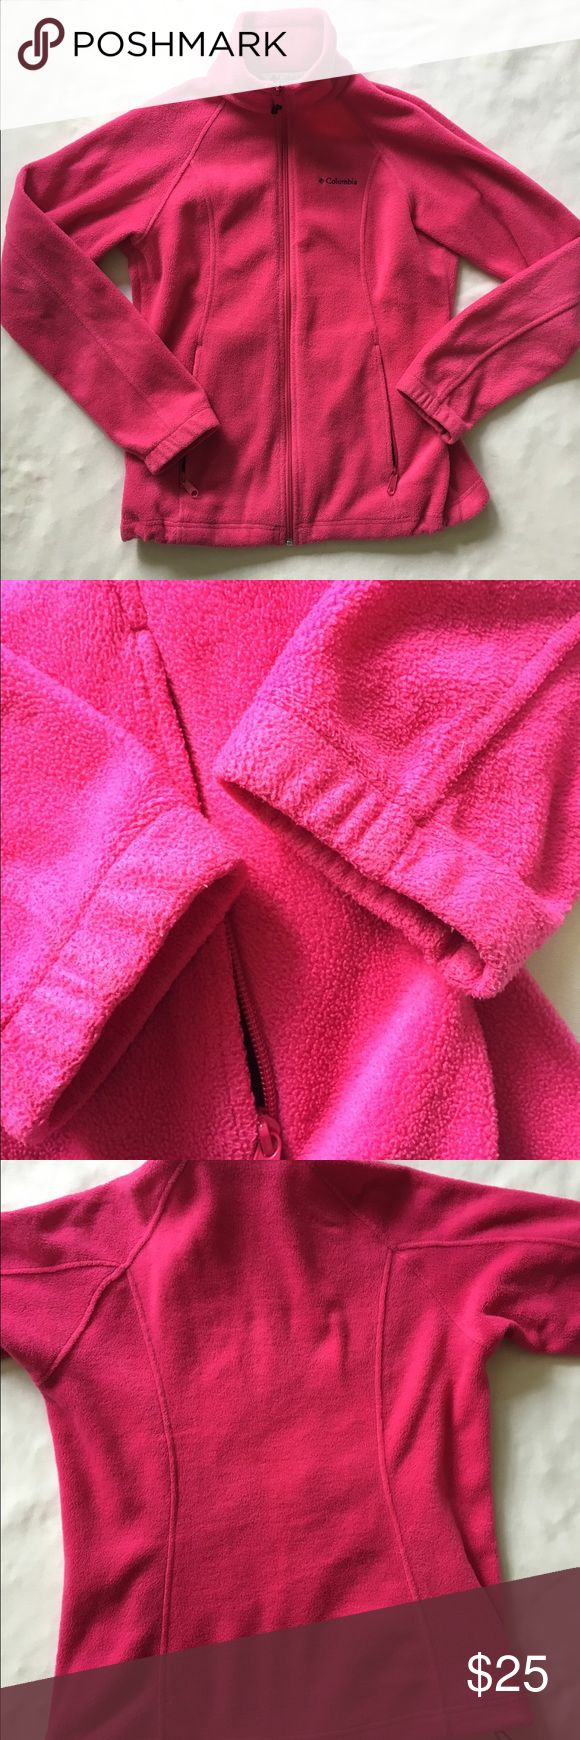 💥💥Bright pink zip up Like new Columbia Jackets & Coats